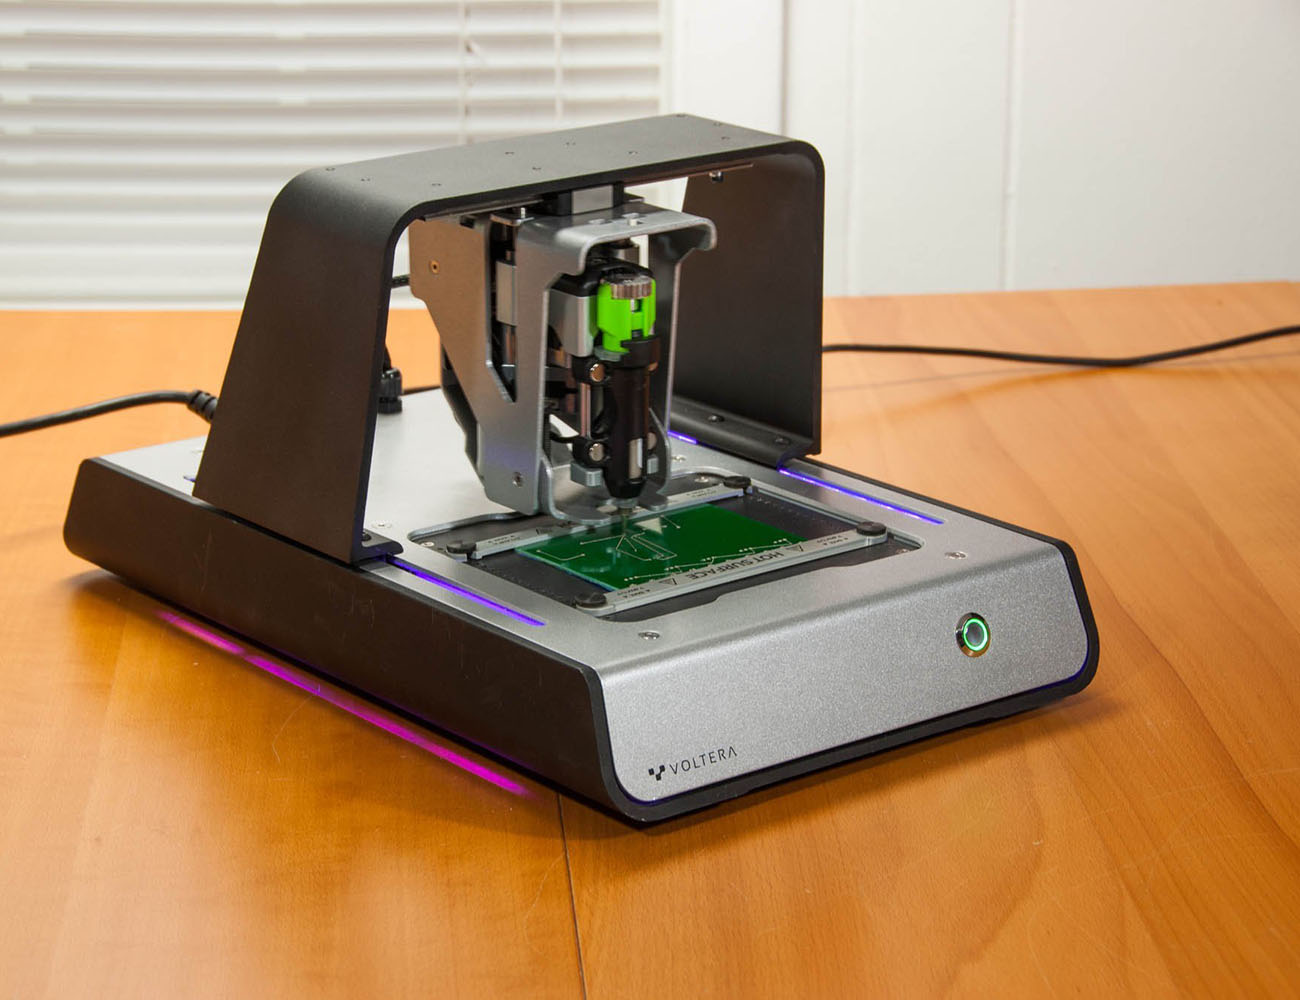 Voltera – Your Circuit Board Prototyping Machine